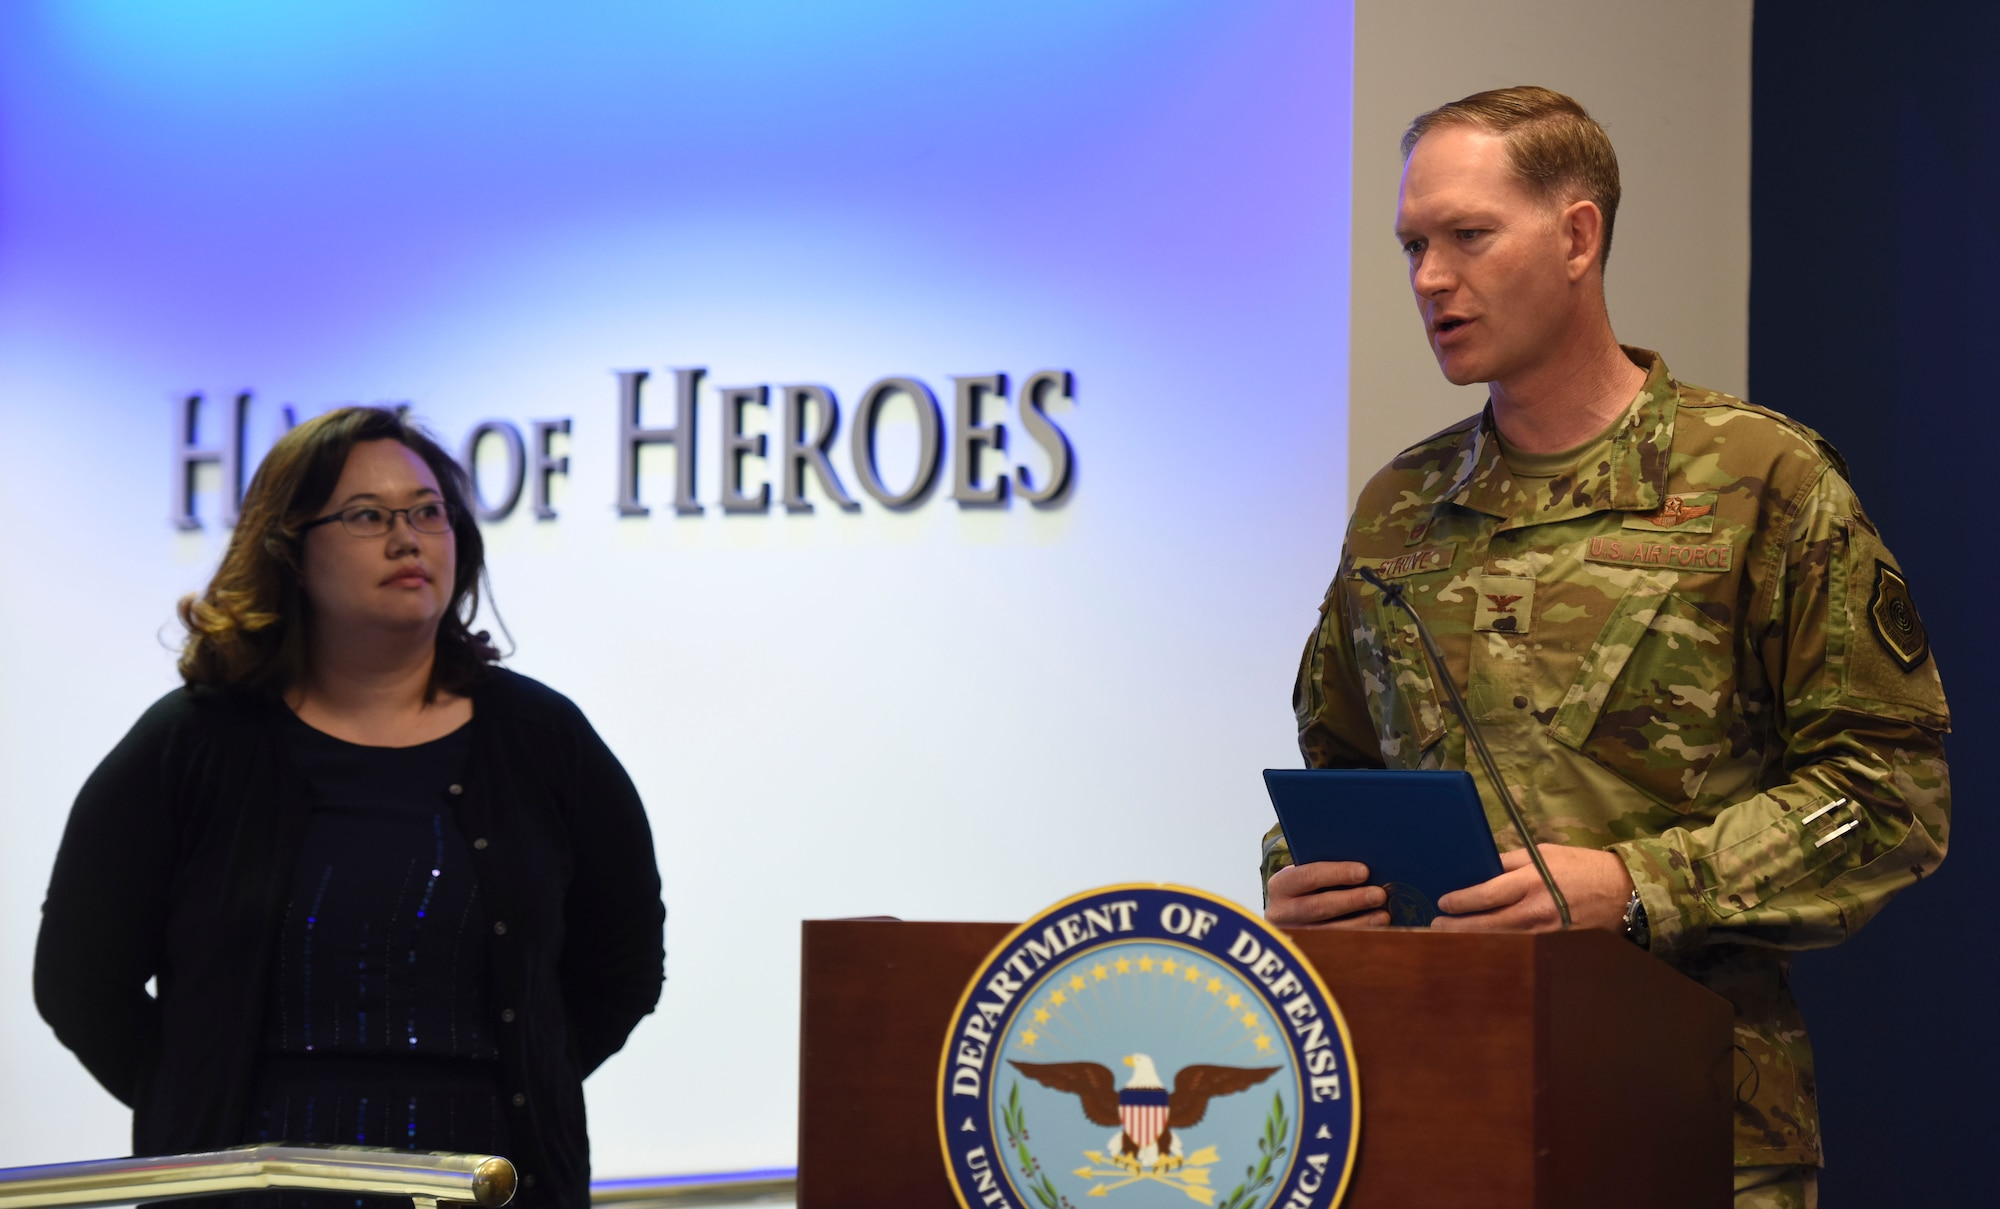 Col. Kristopher Struve, Misawa Air Base, Japan Wing commander gives his remarks during the 2018 Defense Suicide Prevention Month recognition ceremony at the Pentagon, in Arlington, Va., May 15, 2019. Misawa AB was recognized by DoD two years in a row for suicide prevention outreach. (U.S. Air Force photo by Tech Sgt. Anthony Nelson Jr.)